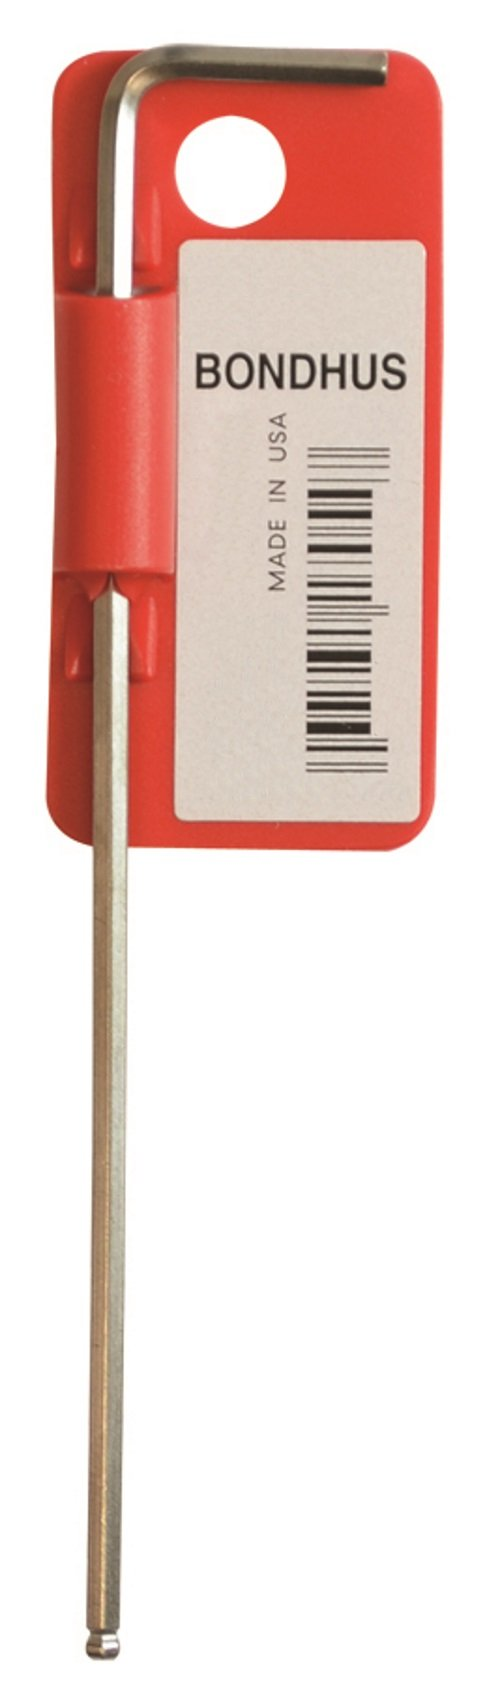 Bondhus 27050 1.5mm Ball End Tip Hex Key L-Wrench with BriteGuard Finish (Pack of 50), 90mm by Bondhus